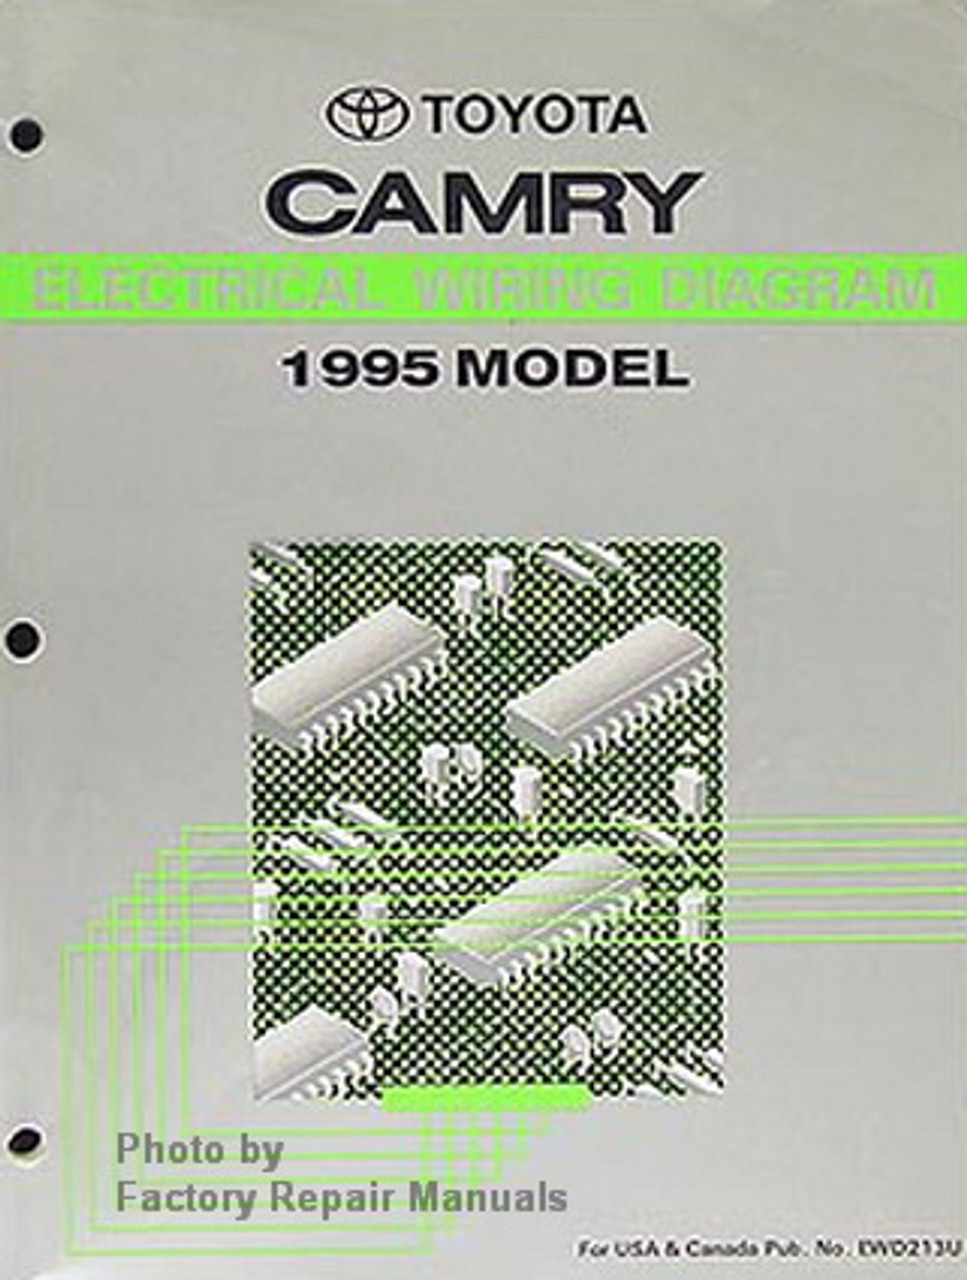 1995 Toyota Camry Electrical Wiring Diagrams Original Factory Manual